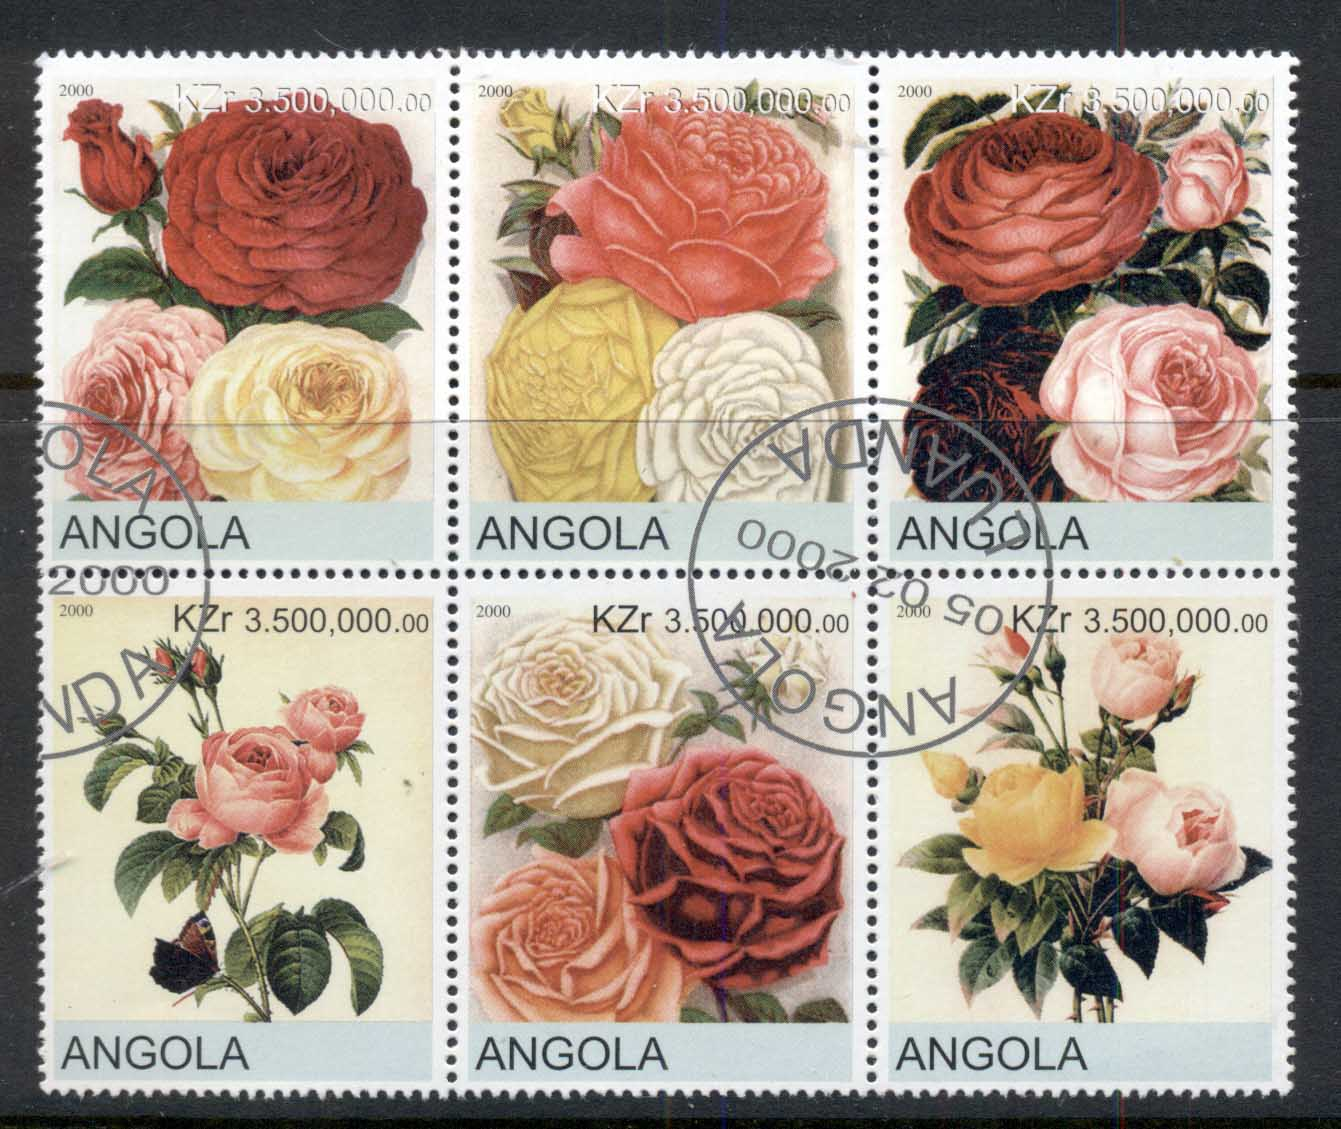 Angola 2000 Flowers, Roses blk6 (rebel Issue) CTO